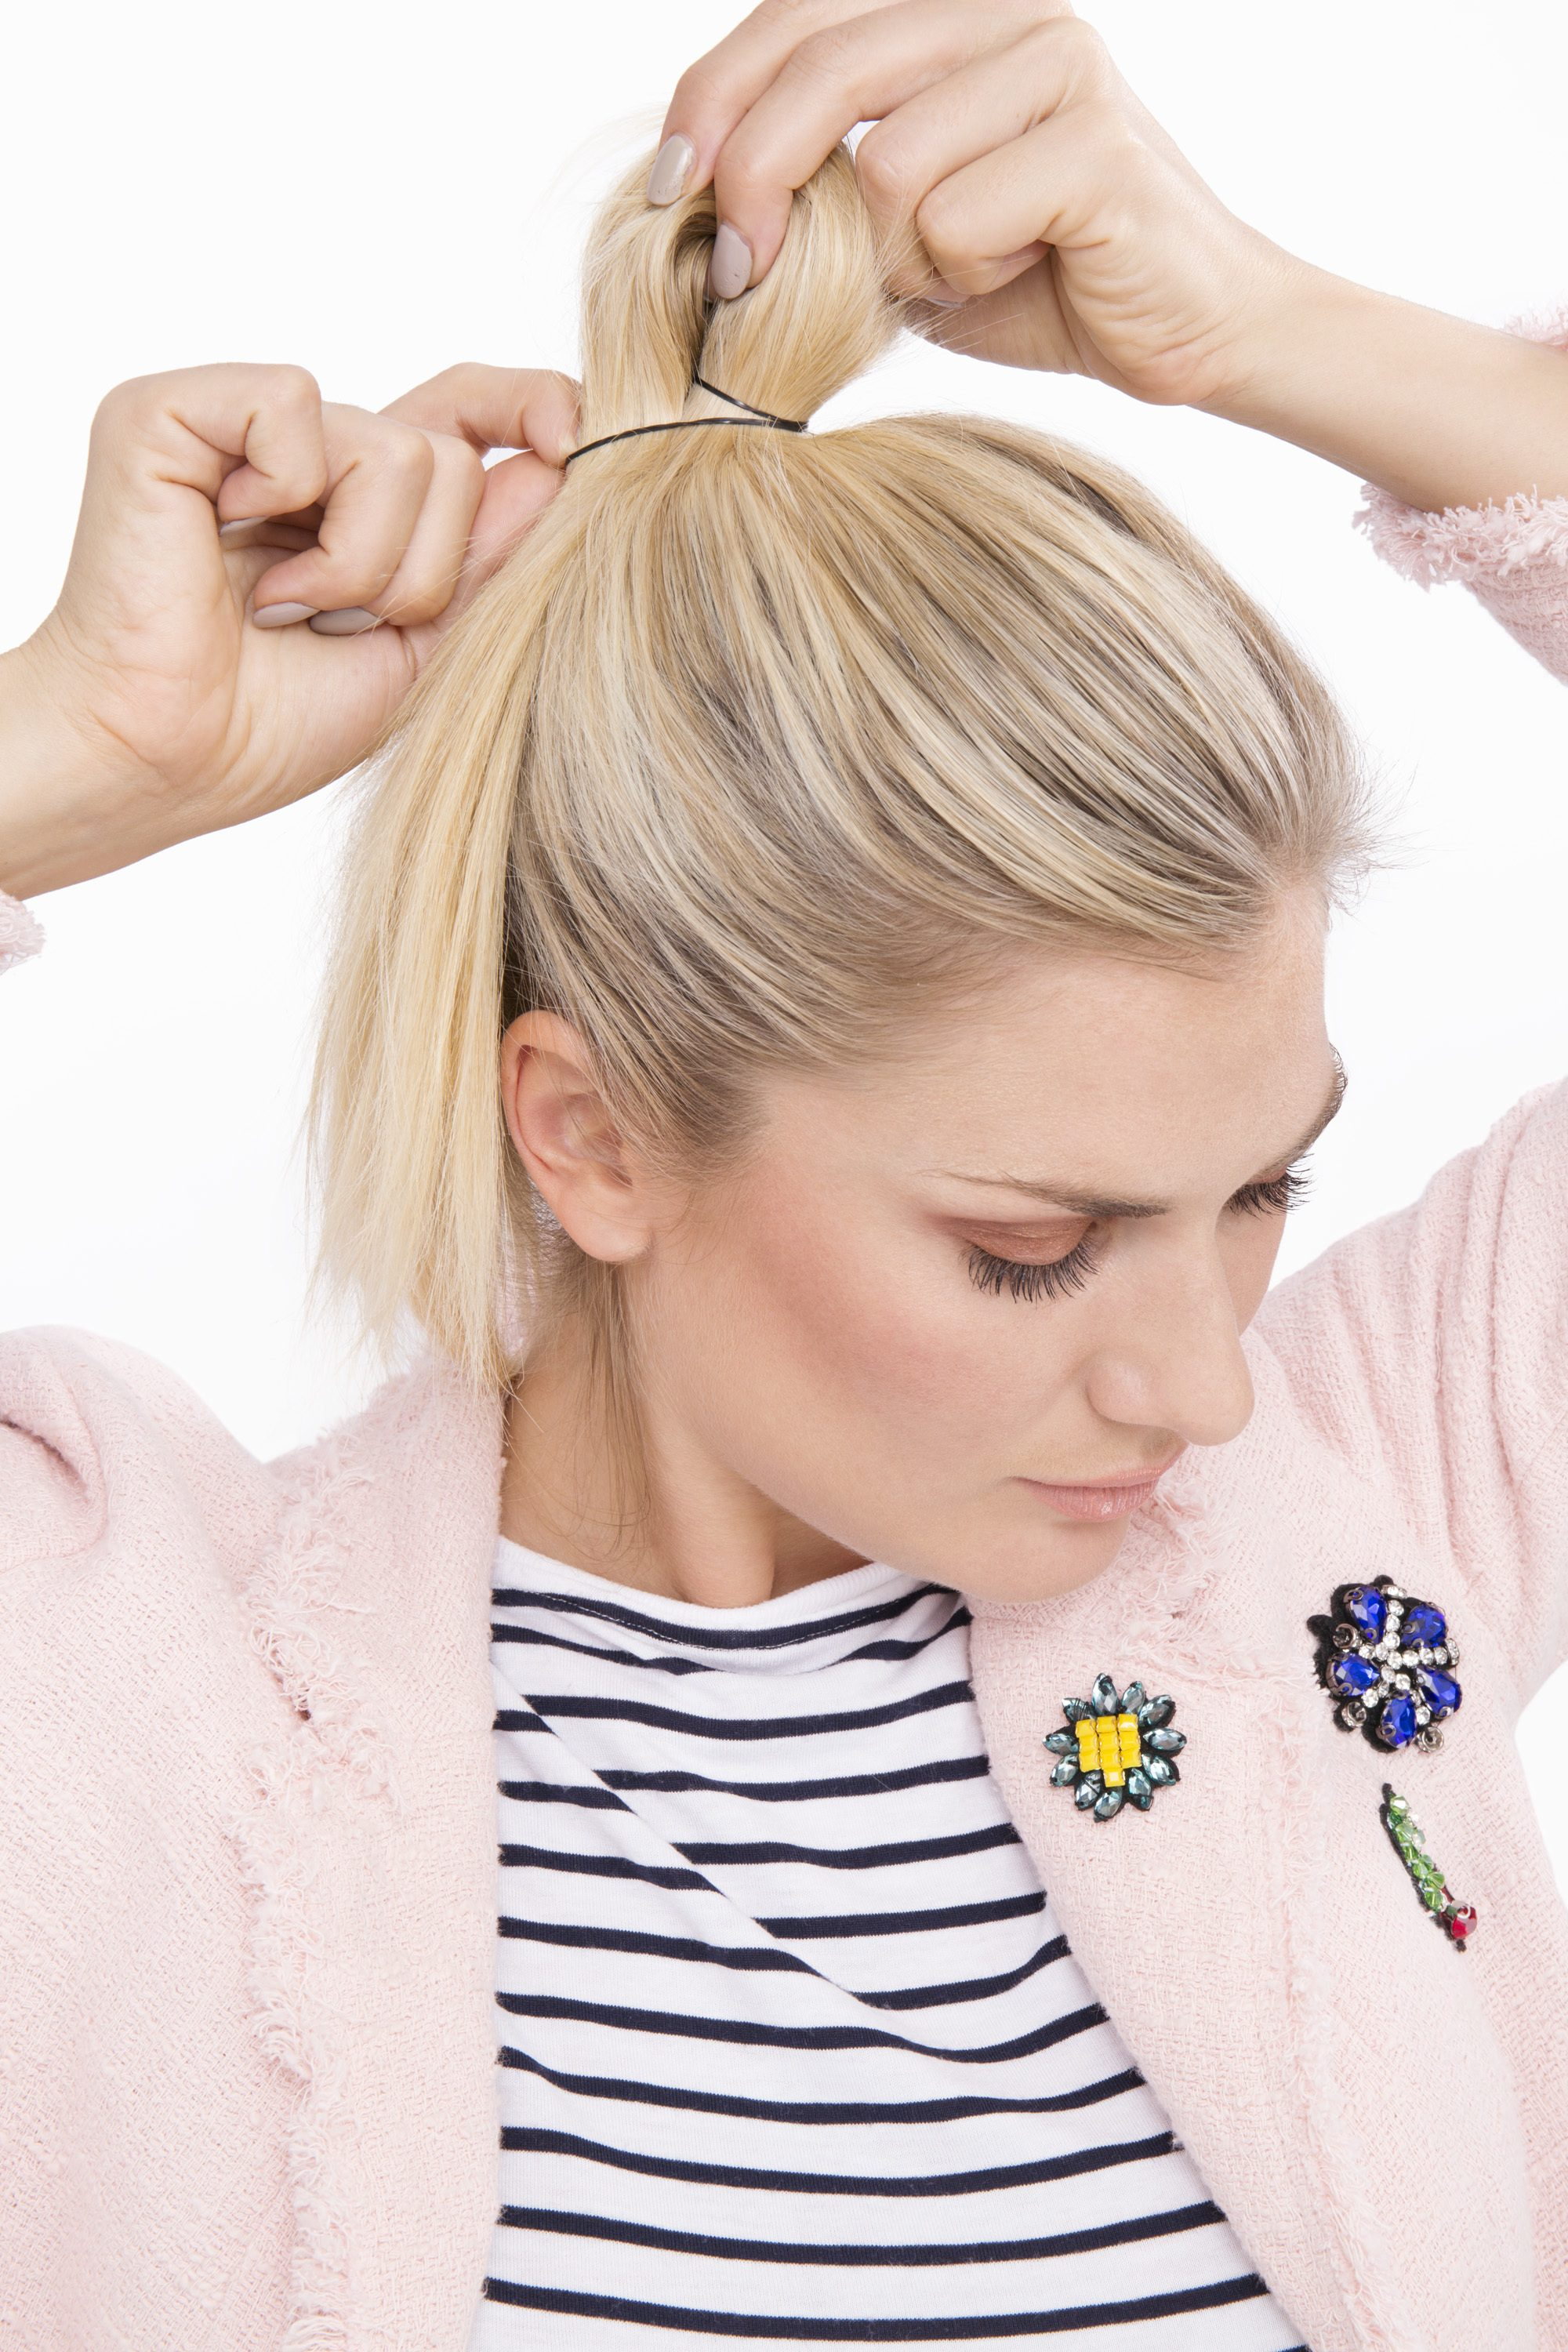 blonde model tying her hair into a ponytail